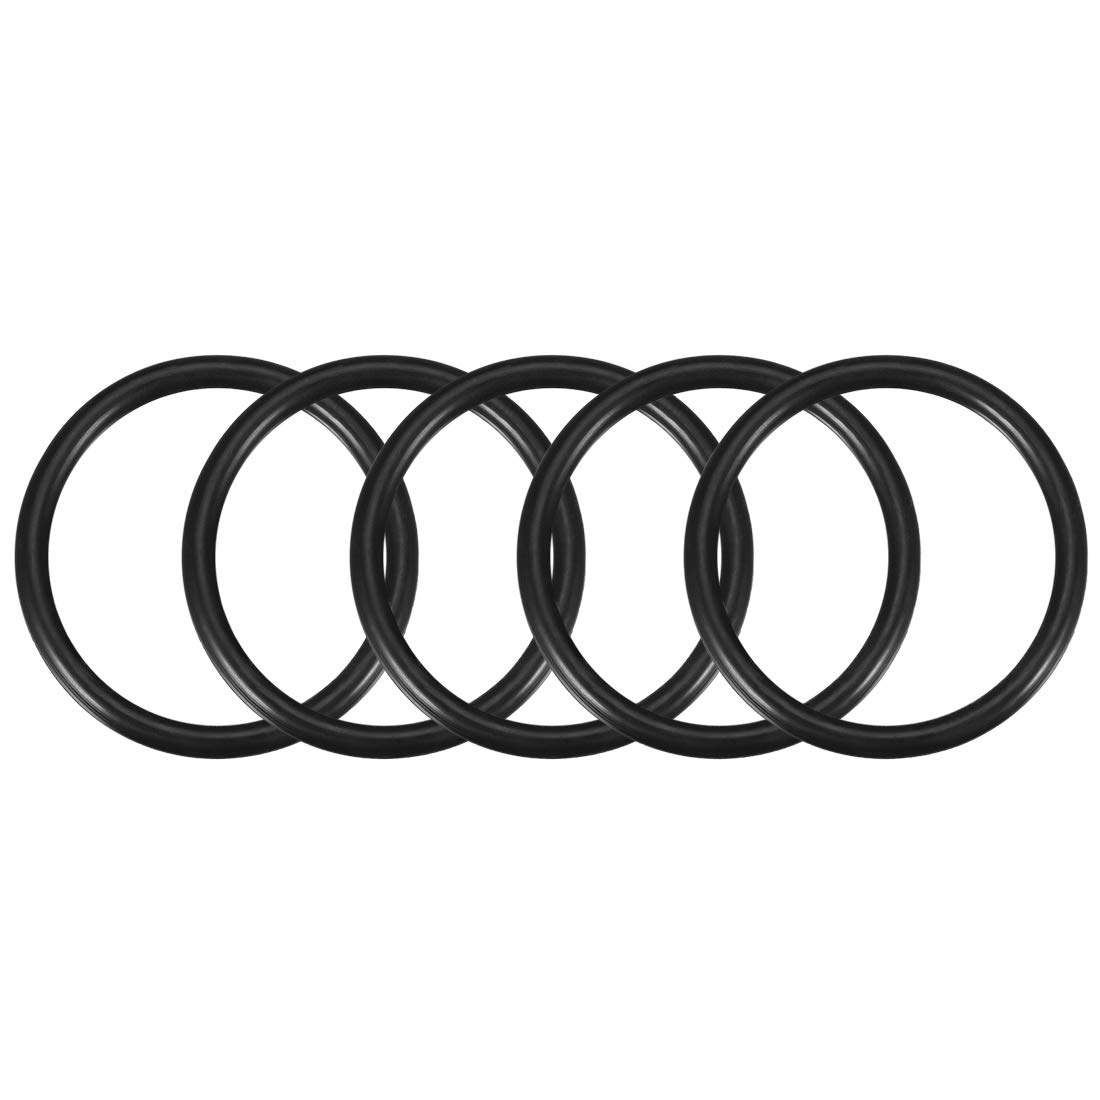 5mm Width,Round Seal Gasket sourcing map O-Rings Nitrile Rubber 65mm OD Pack of 5 55mm Inner Diameter